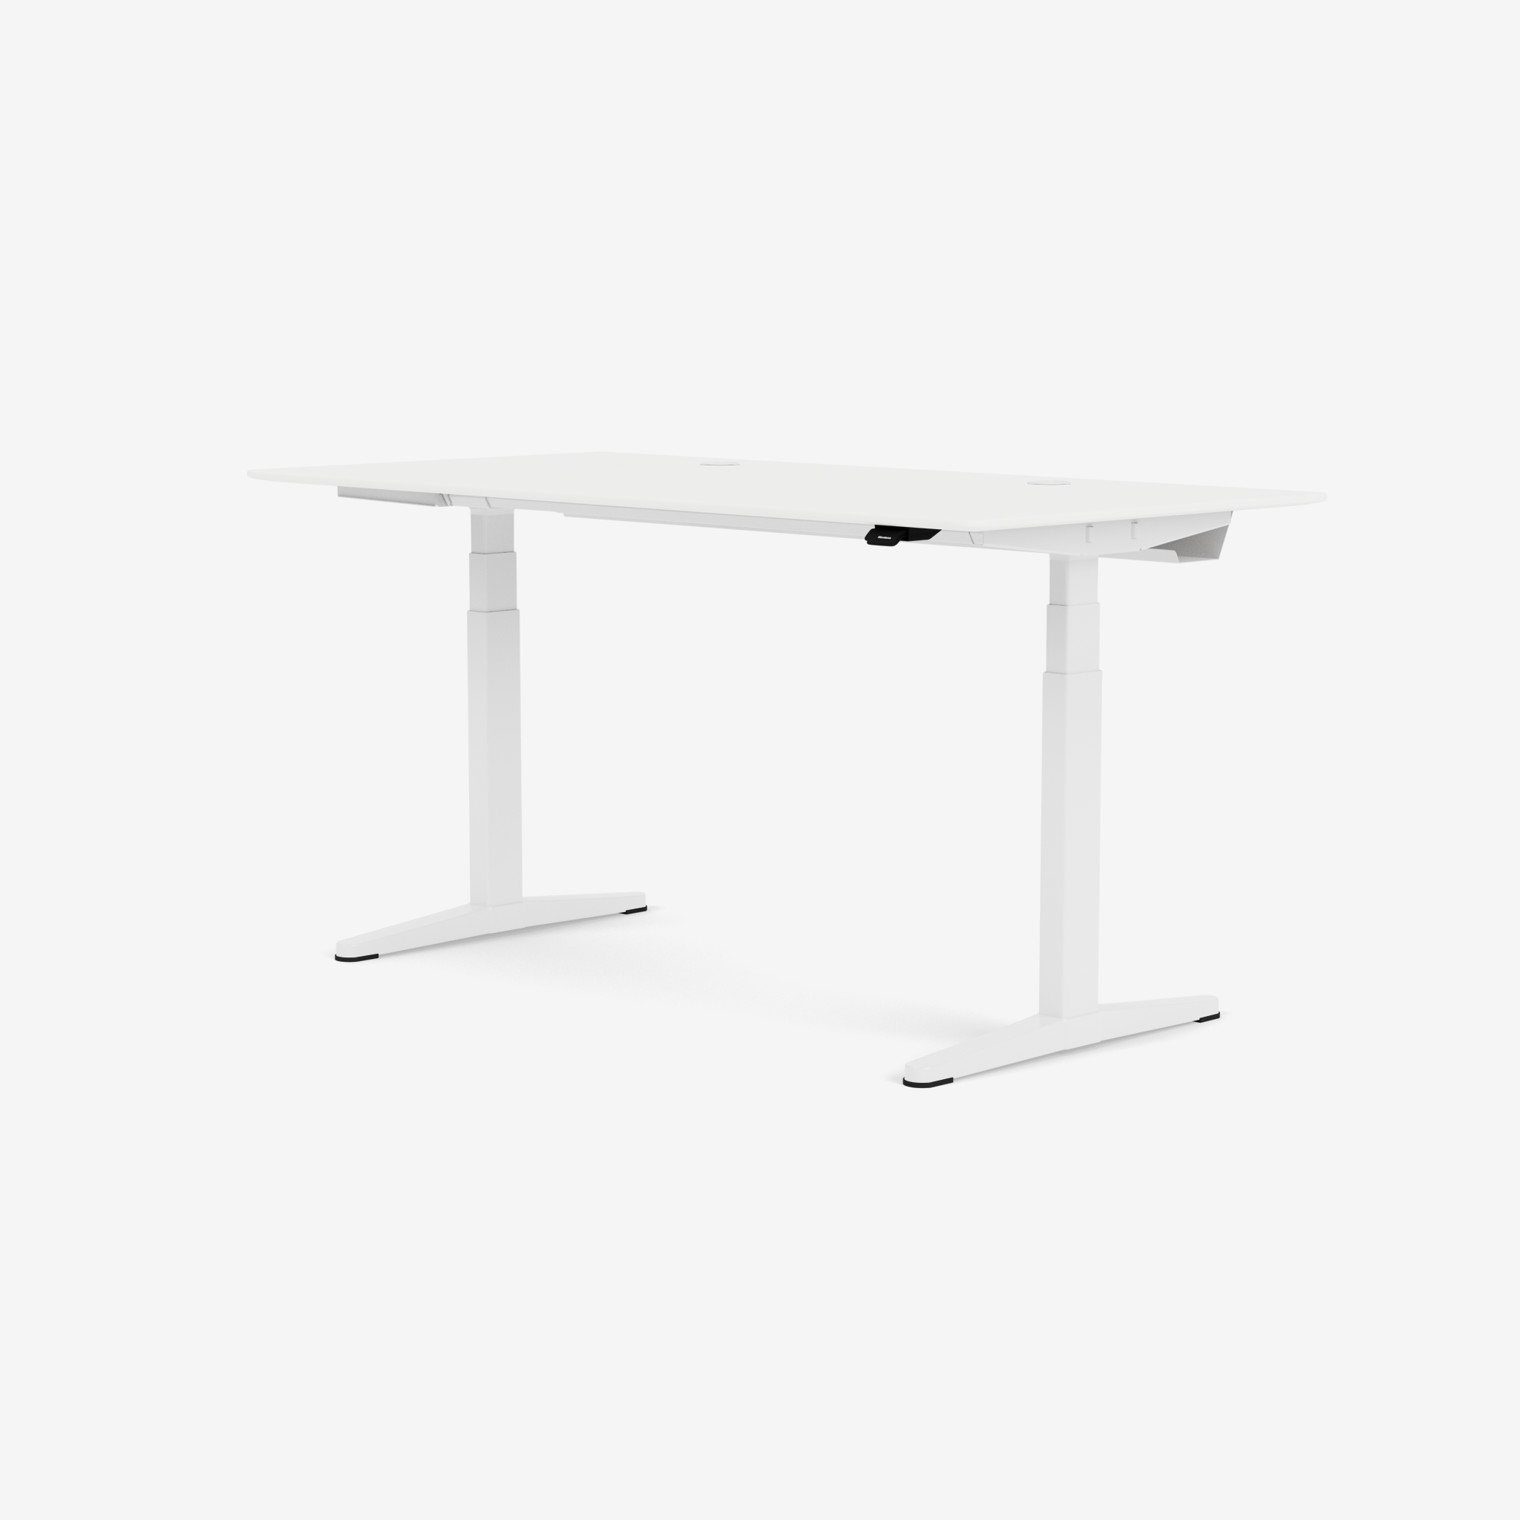 Height-adjustable work desk HILOW3G160